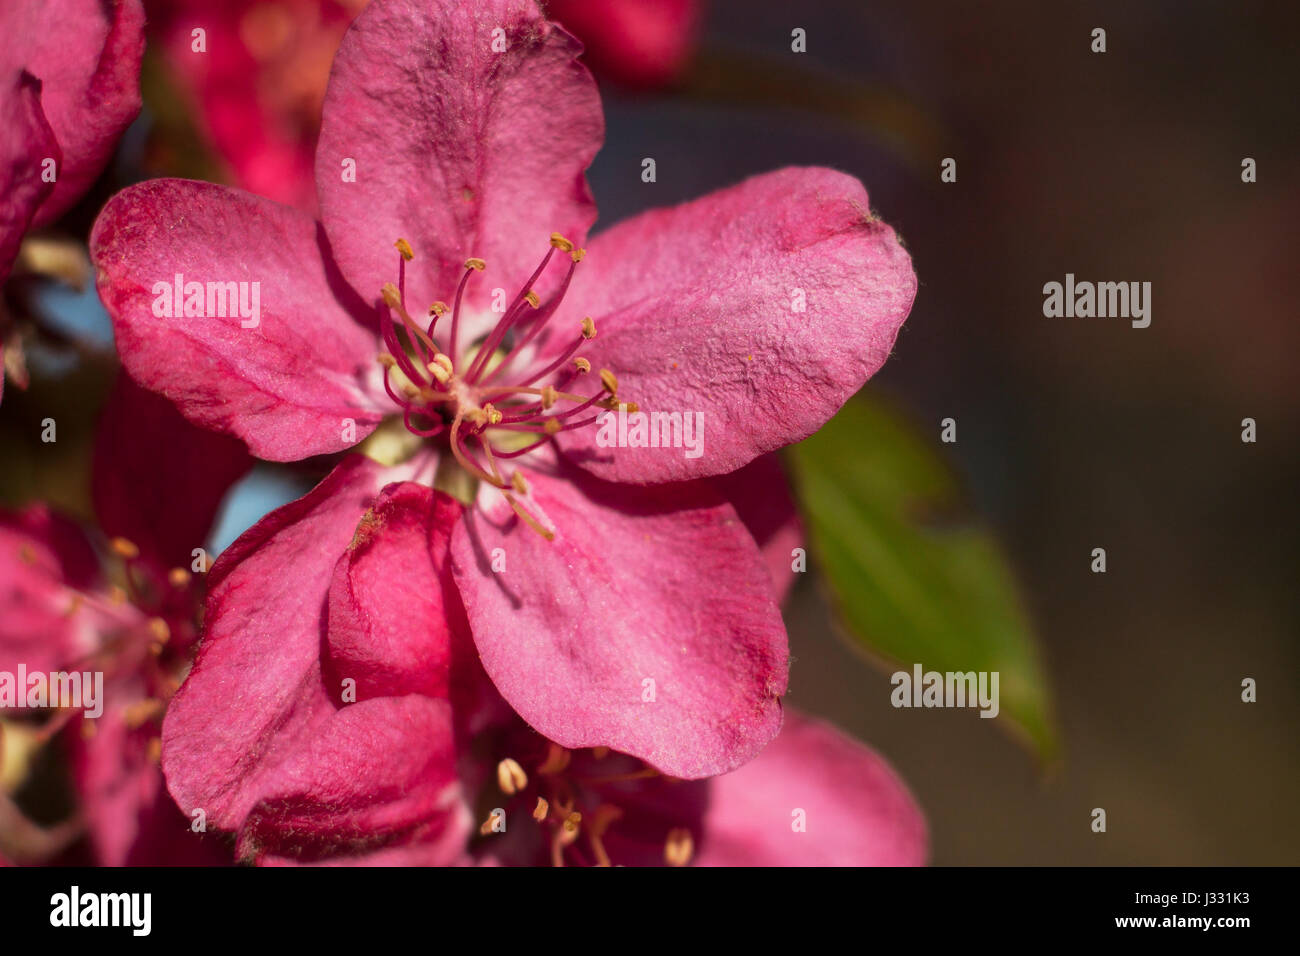 Pink Apple Flowers Beautiful Flowering Apple Trees Background With